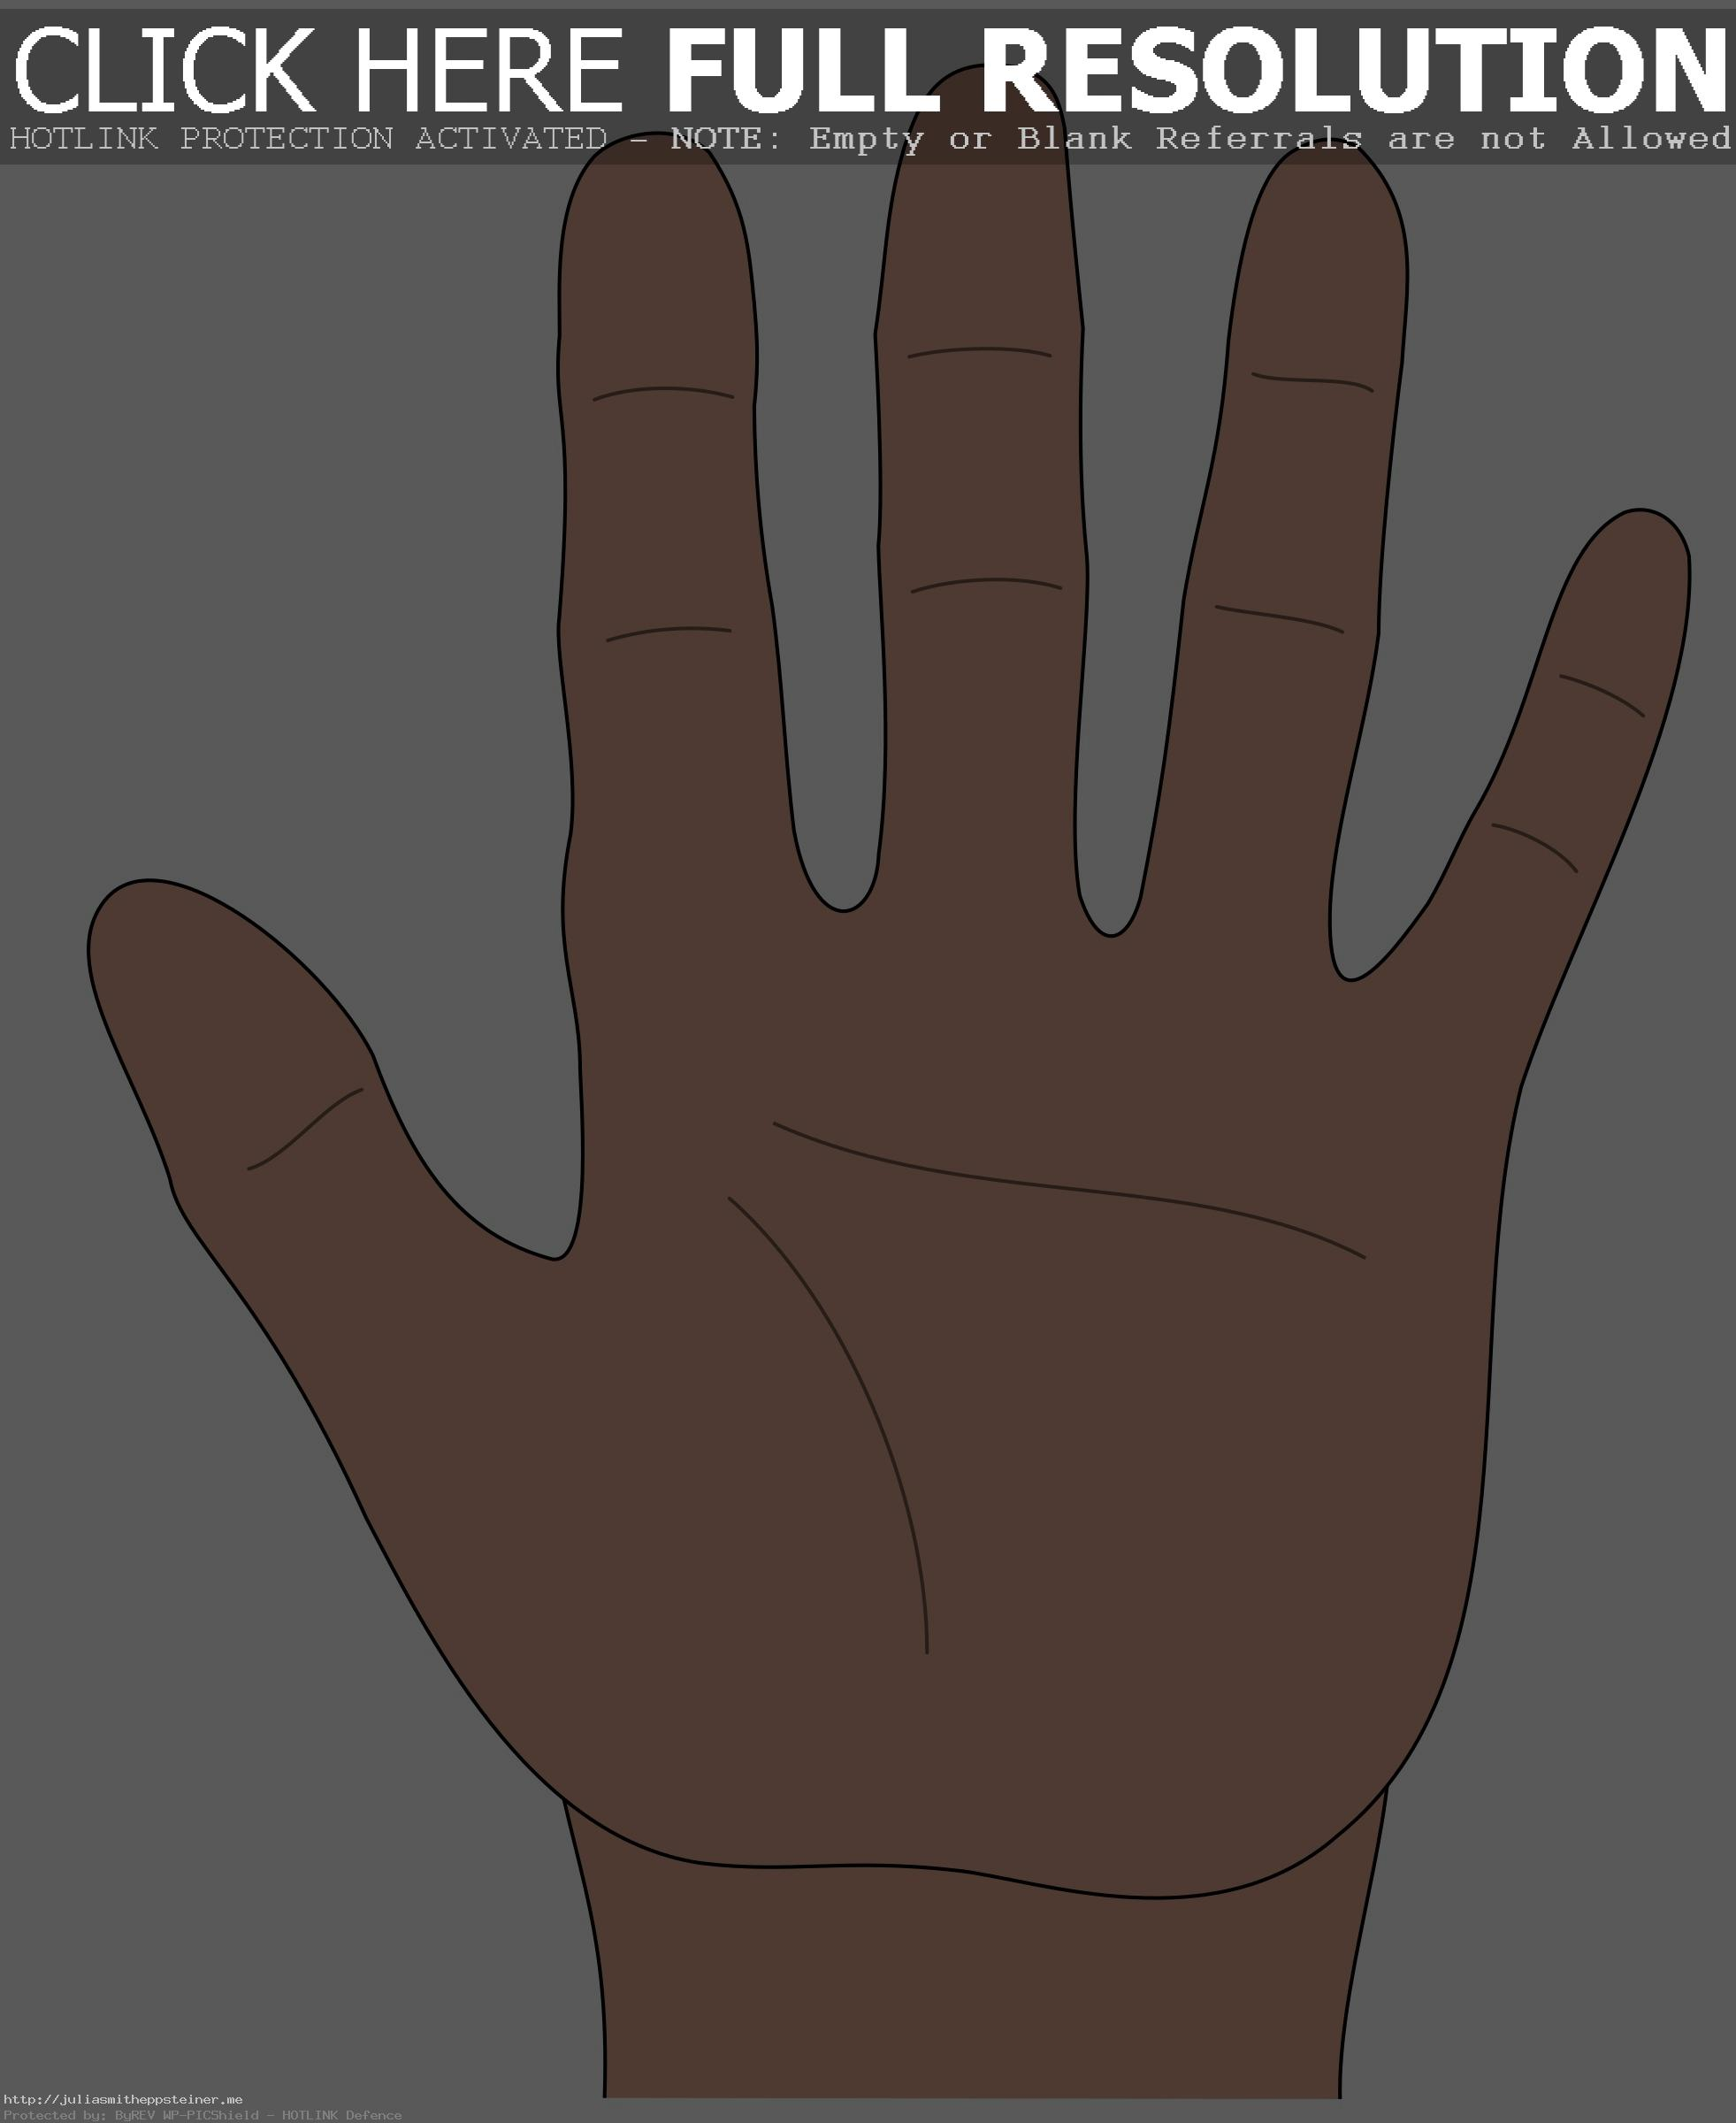 Clipart Hand Open With-Clipart Hand Open With-3